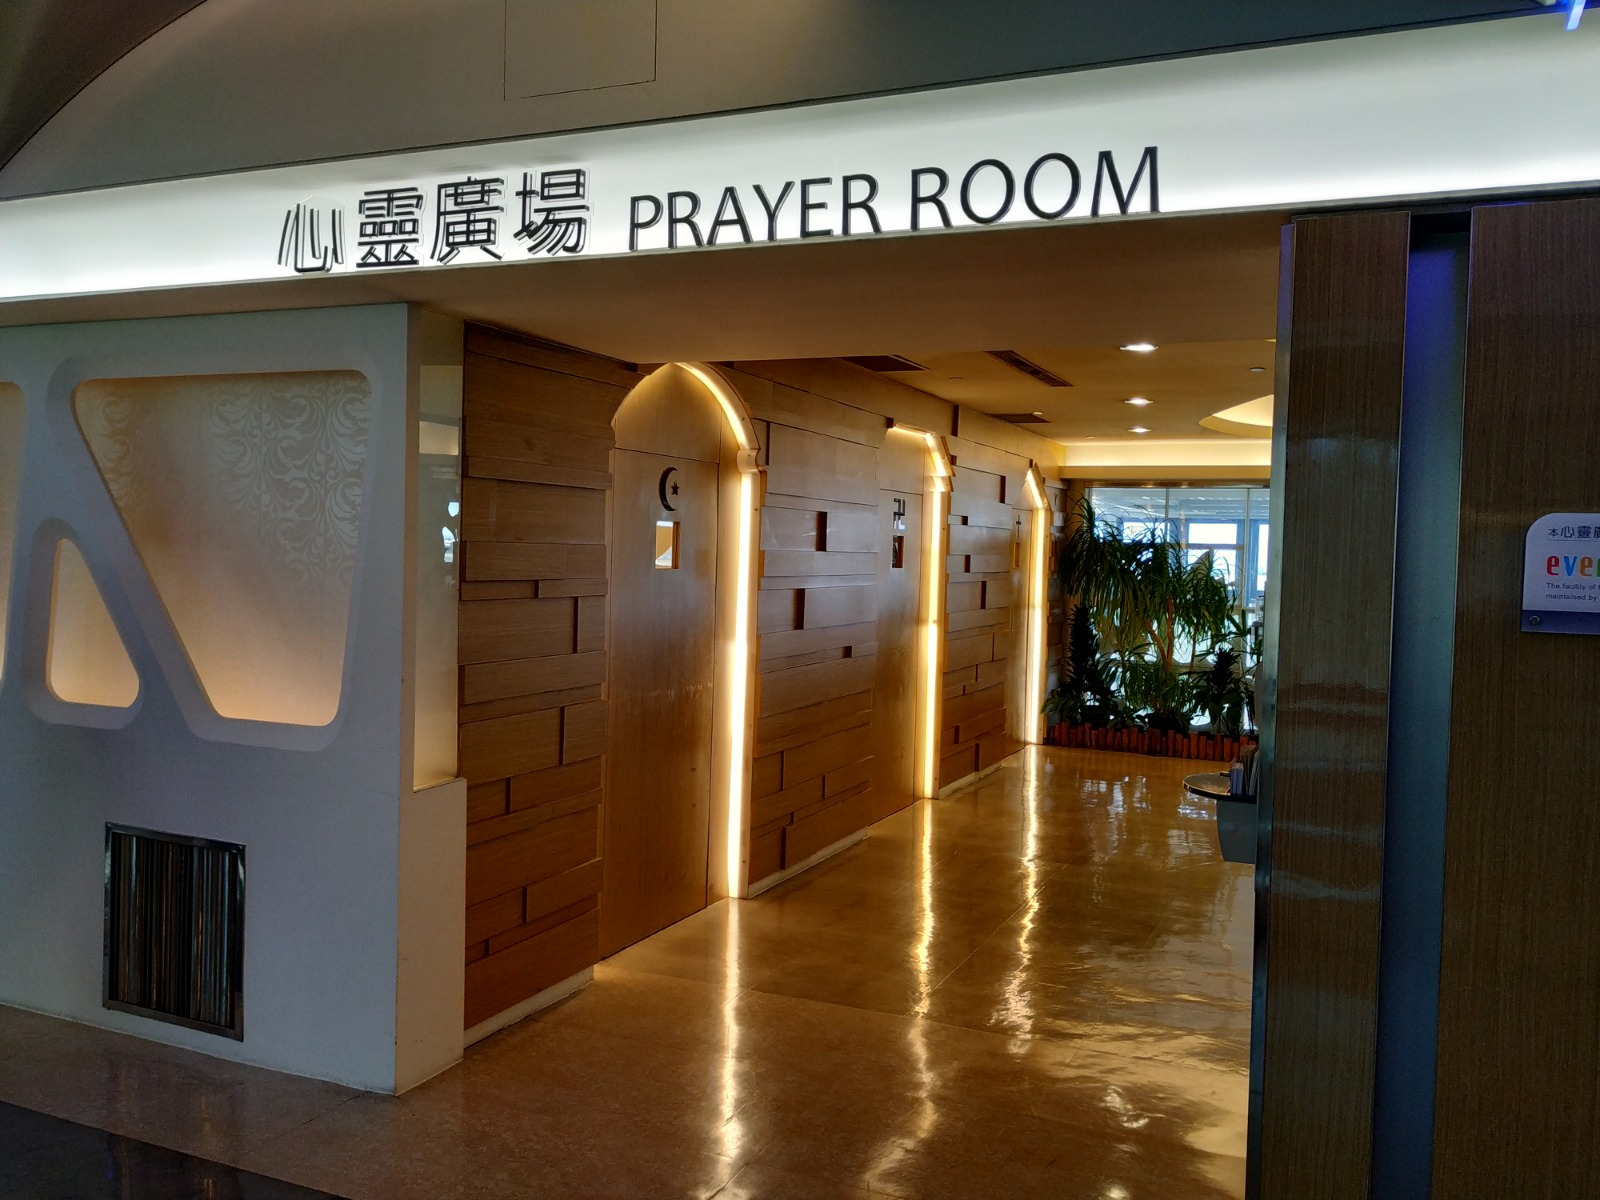 Can We Join Prayers When We Are At The Airport Before Departing